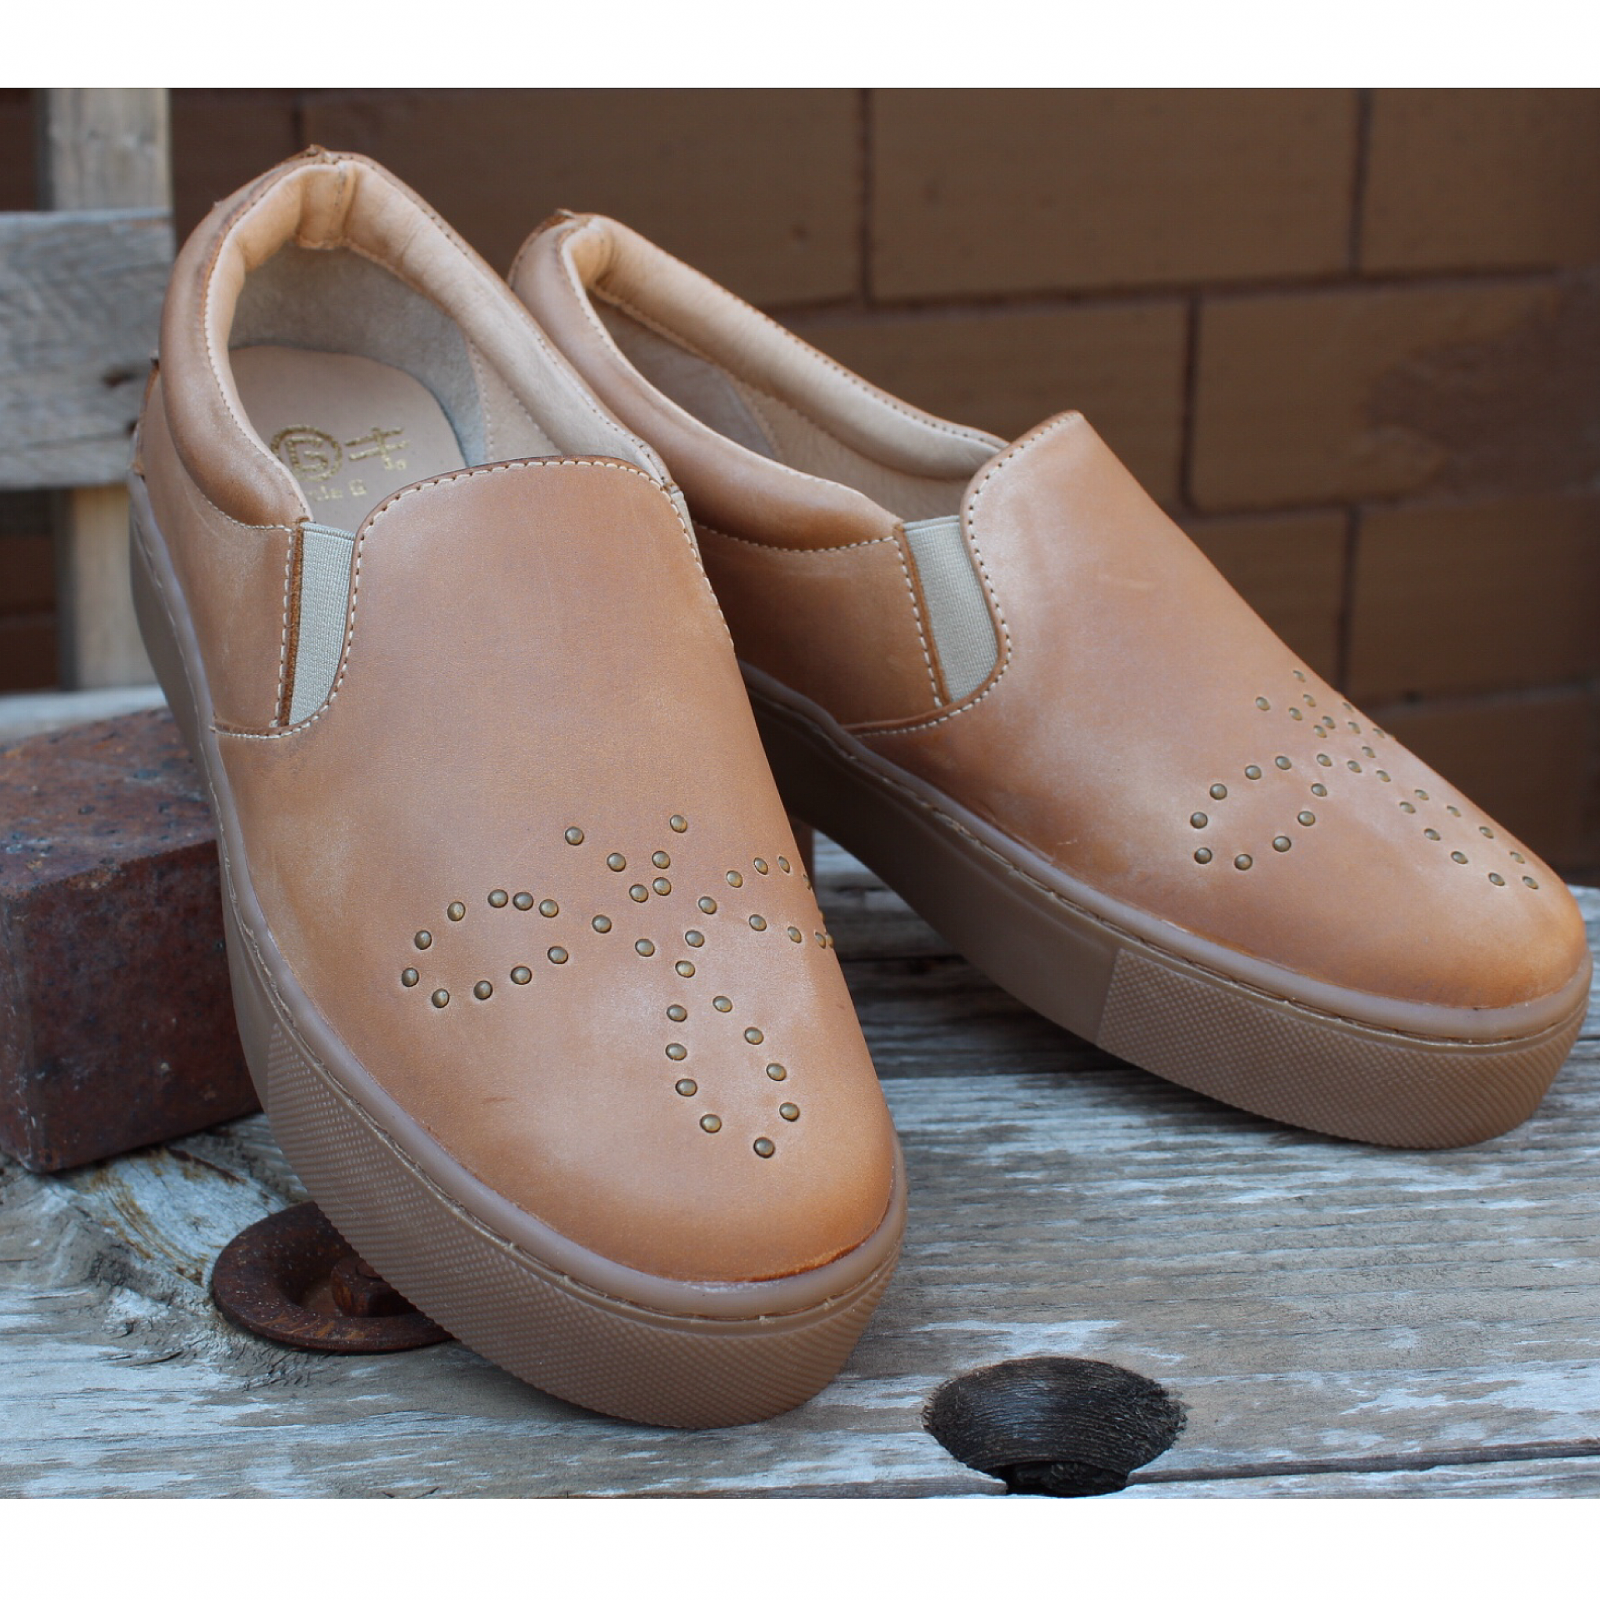 Leather Slip On with Stud Details from Corral